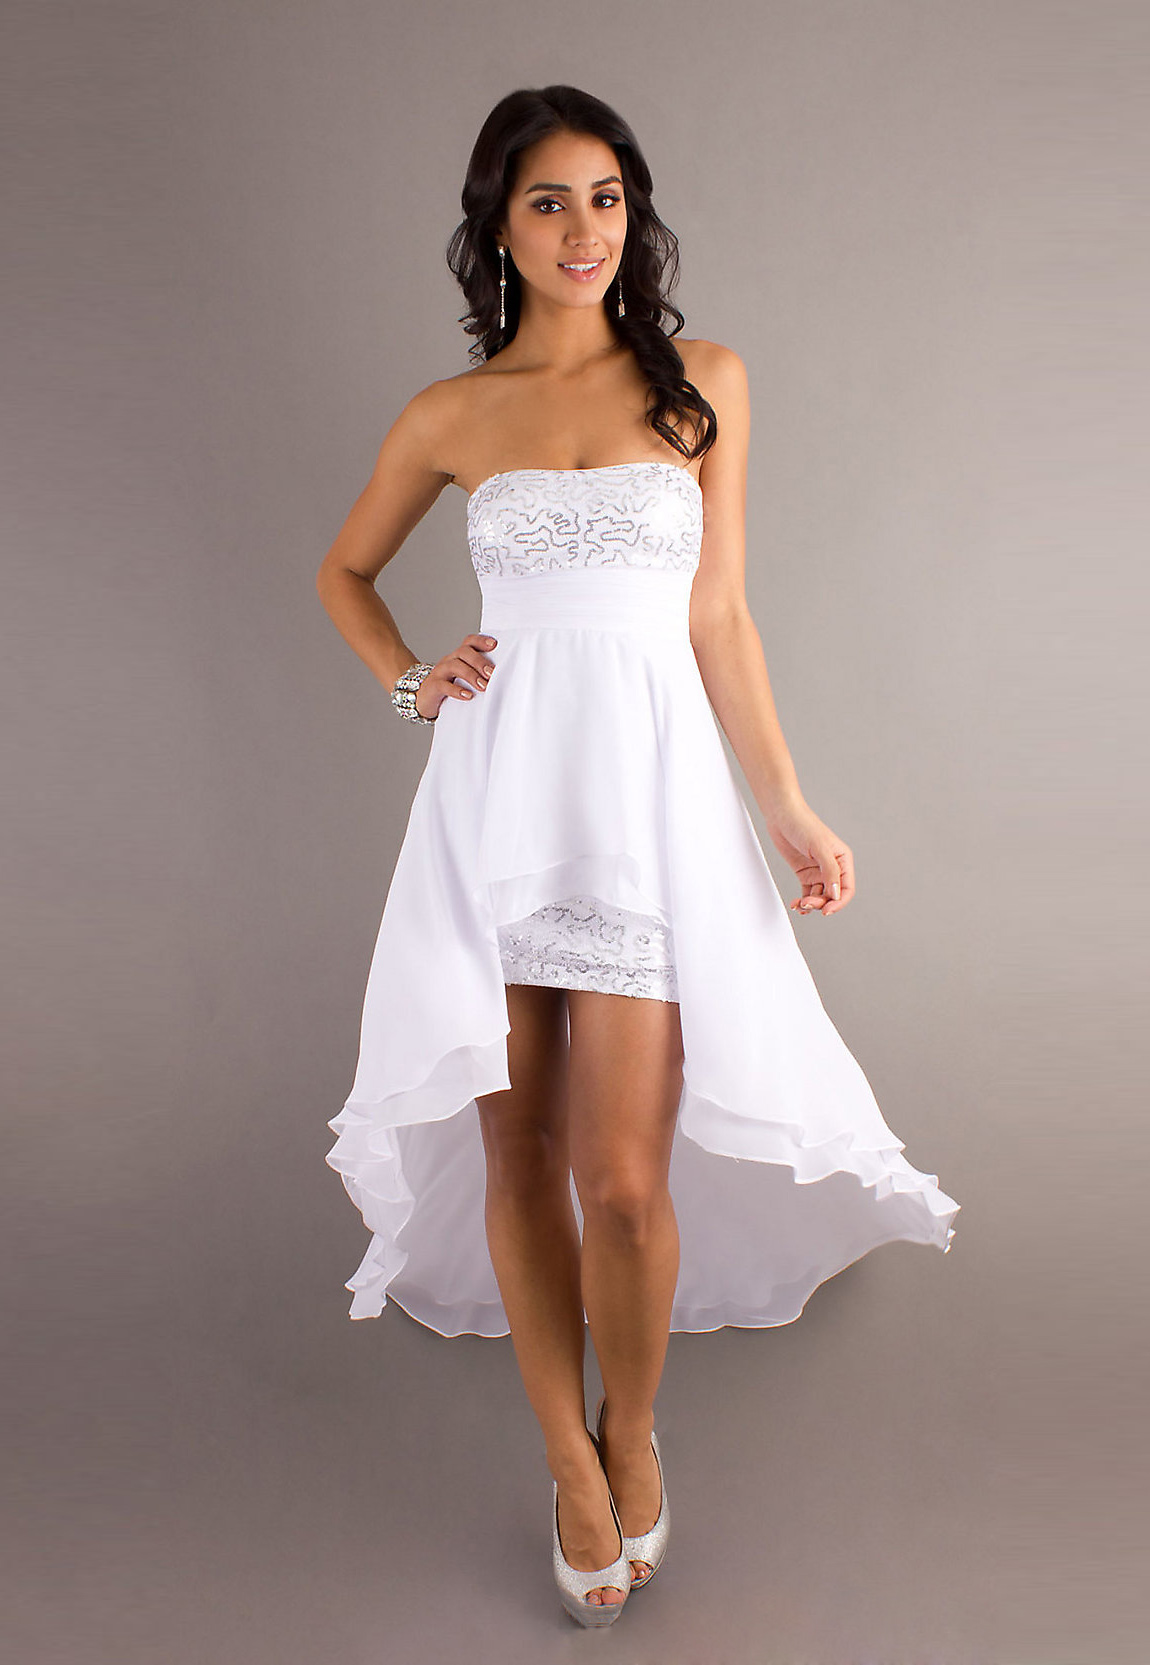 White Dress Strapless